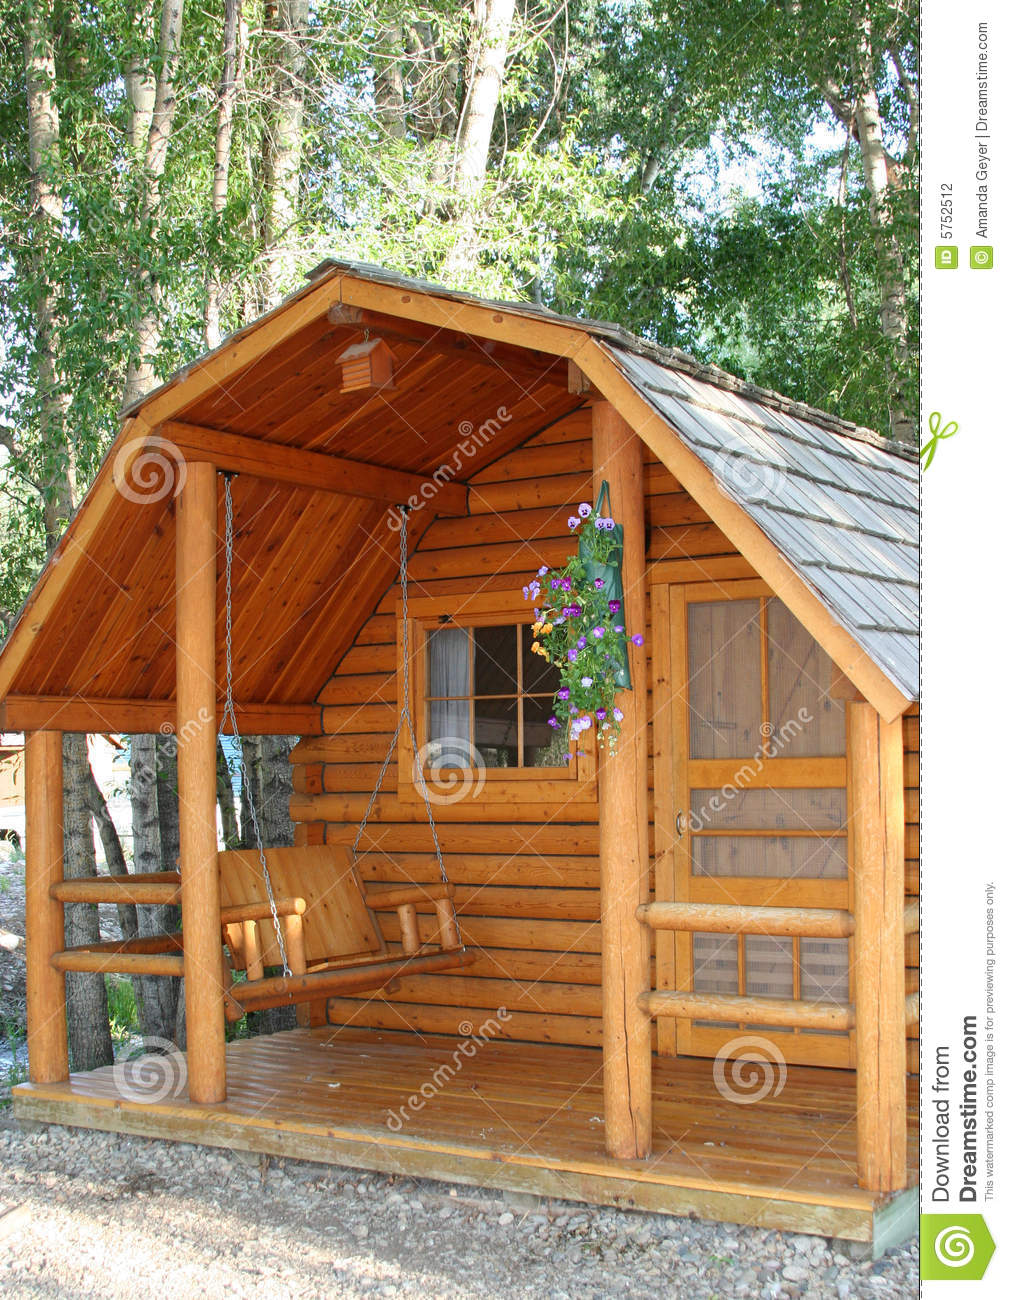 Small wood cabin stock photo. Image of home, vacation ...